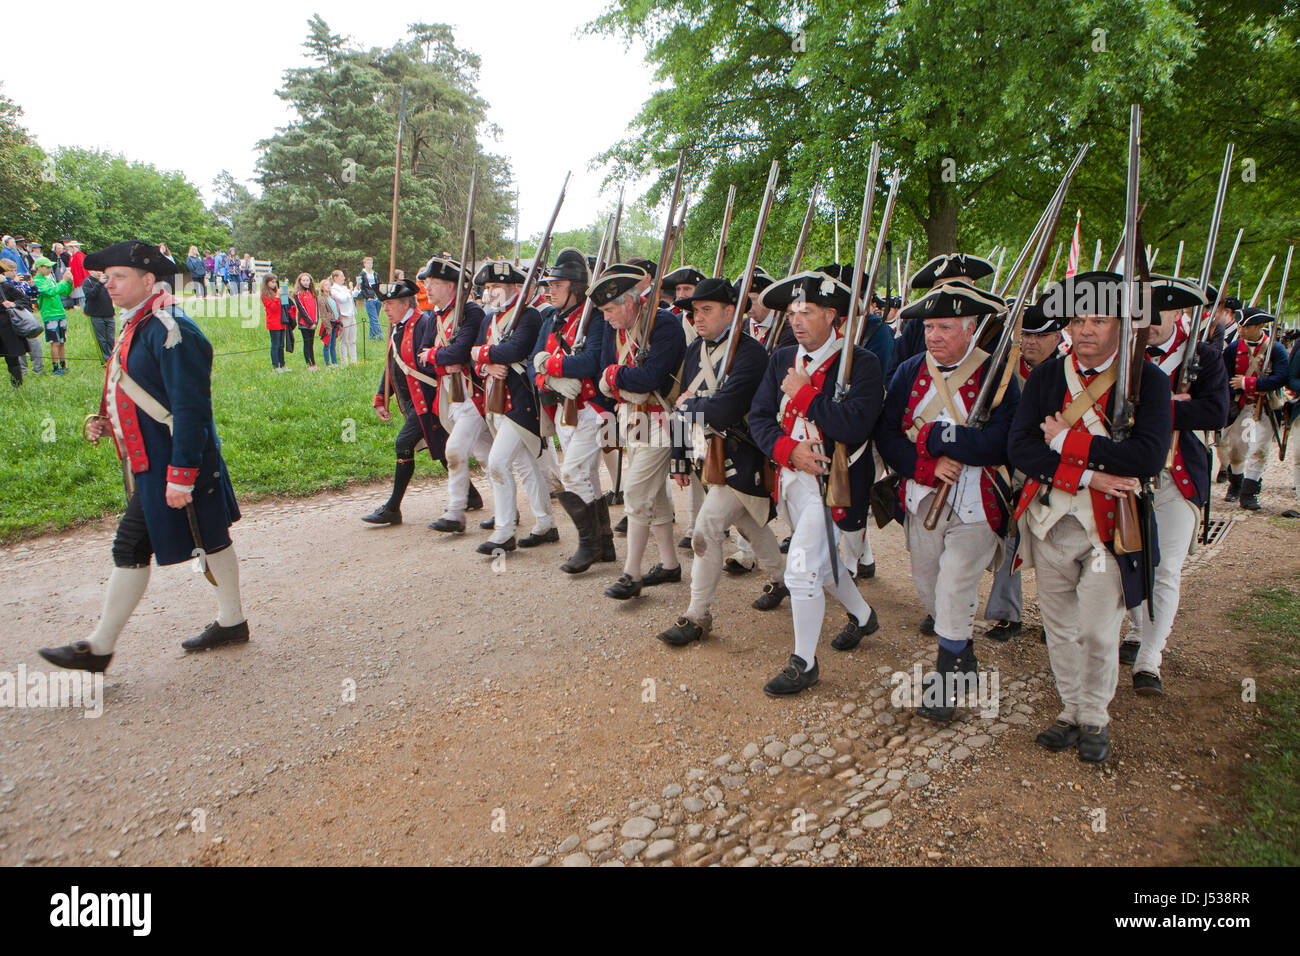 American soldiers in the American Revolutionary War reenactment - Virginia USA - Stock Image